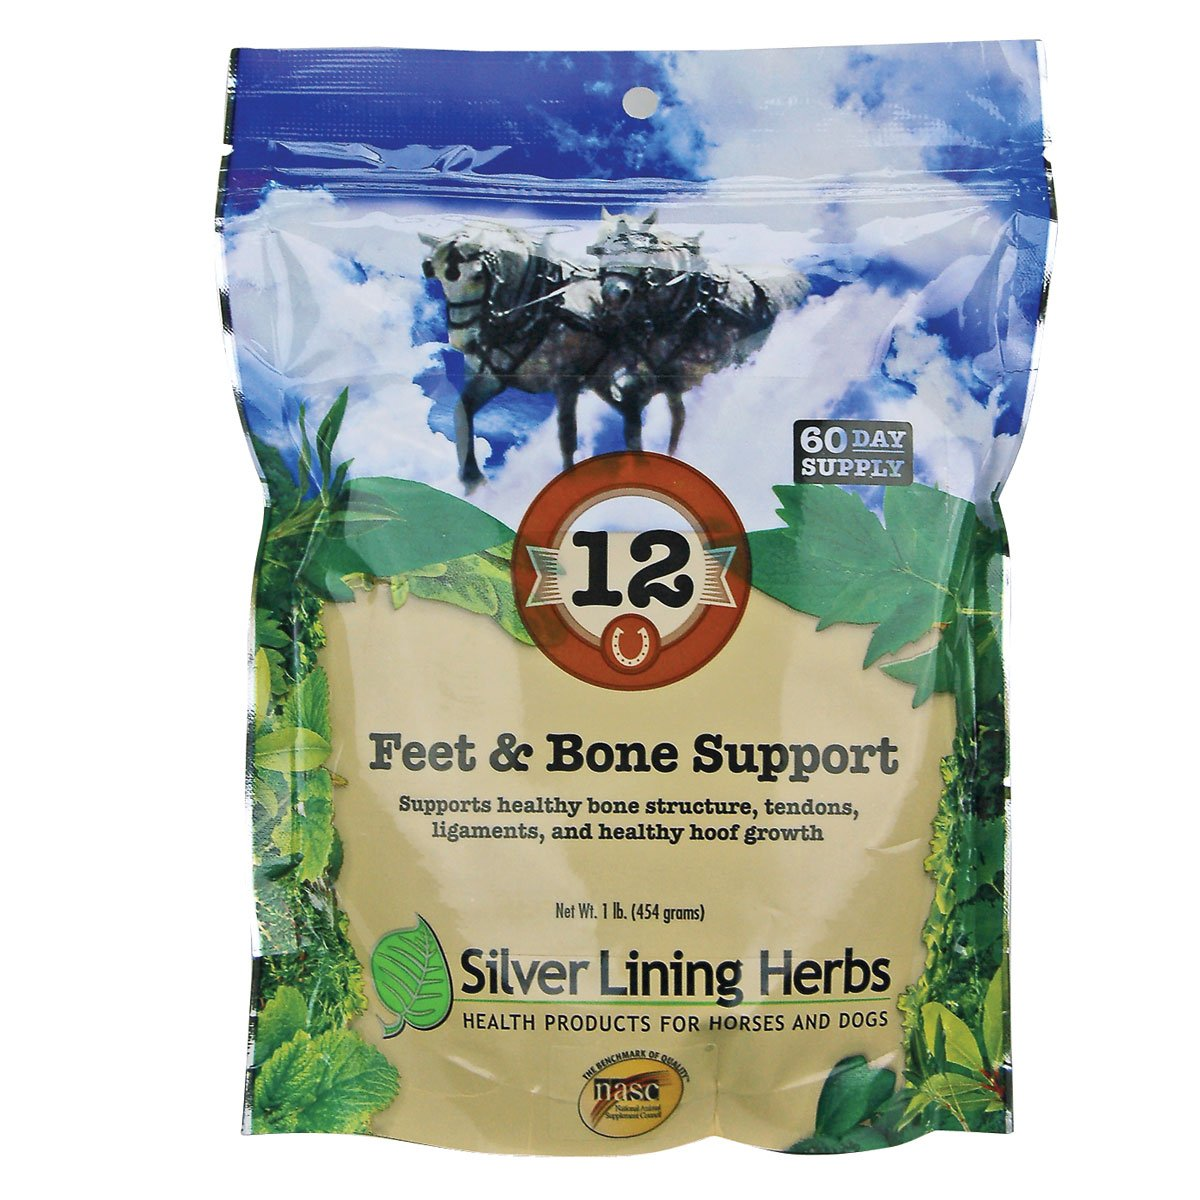 Silver Lining Herbs, 12 Feet and Bone Support, 1 lb